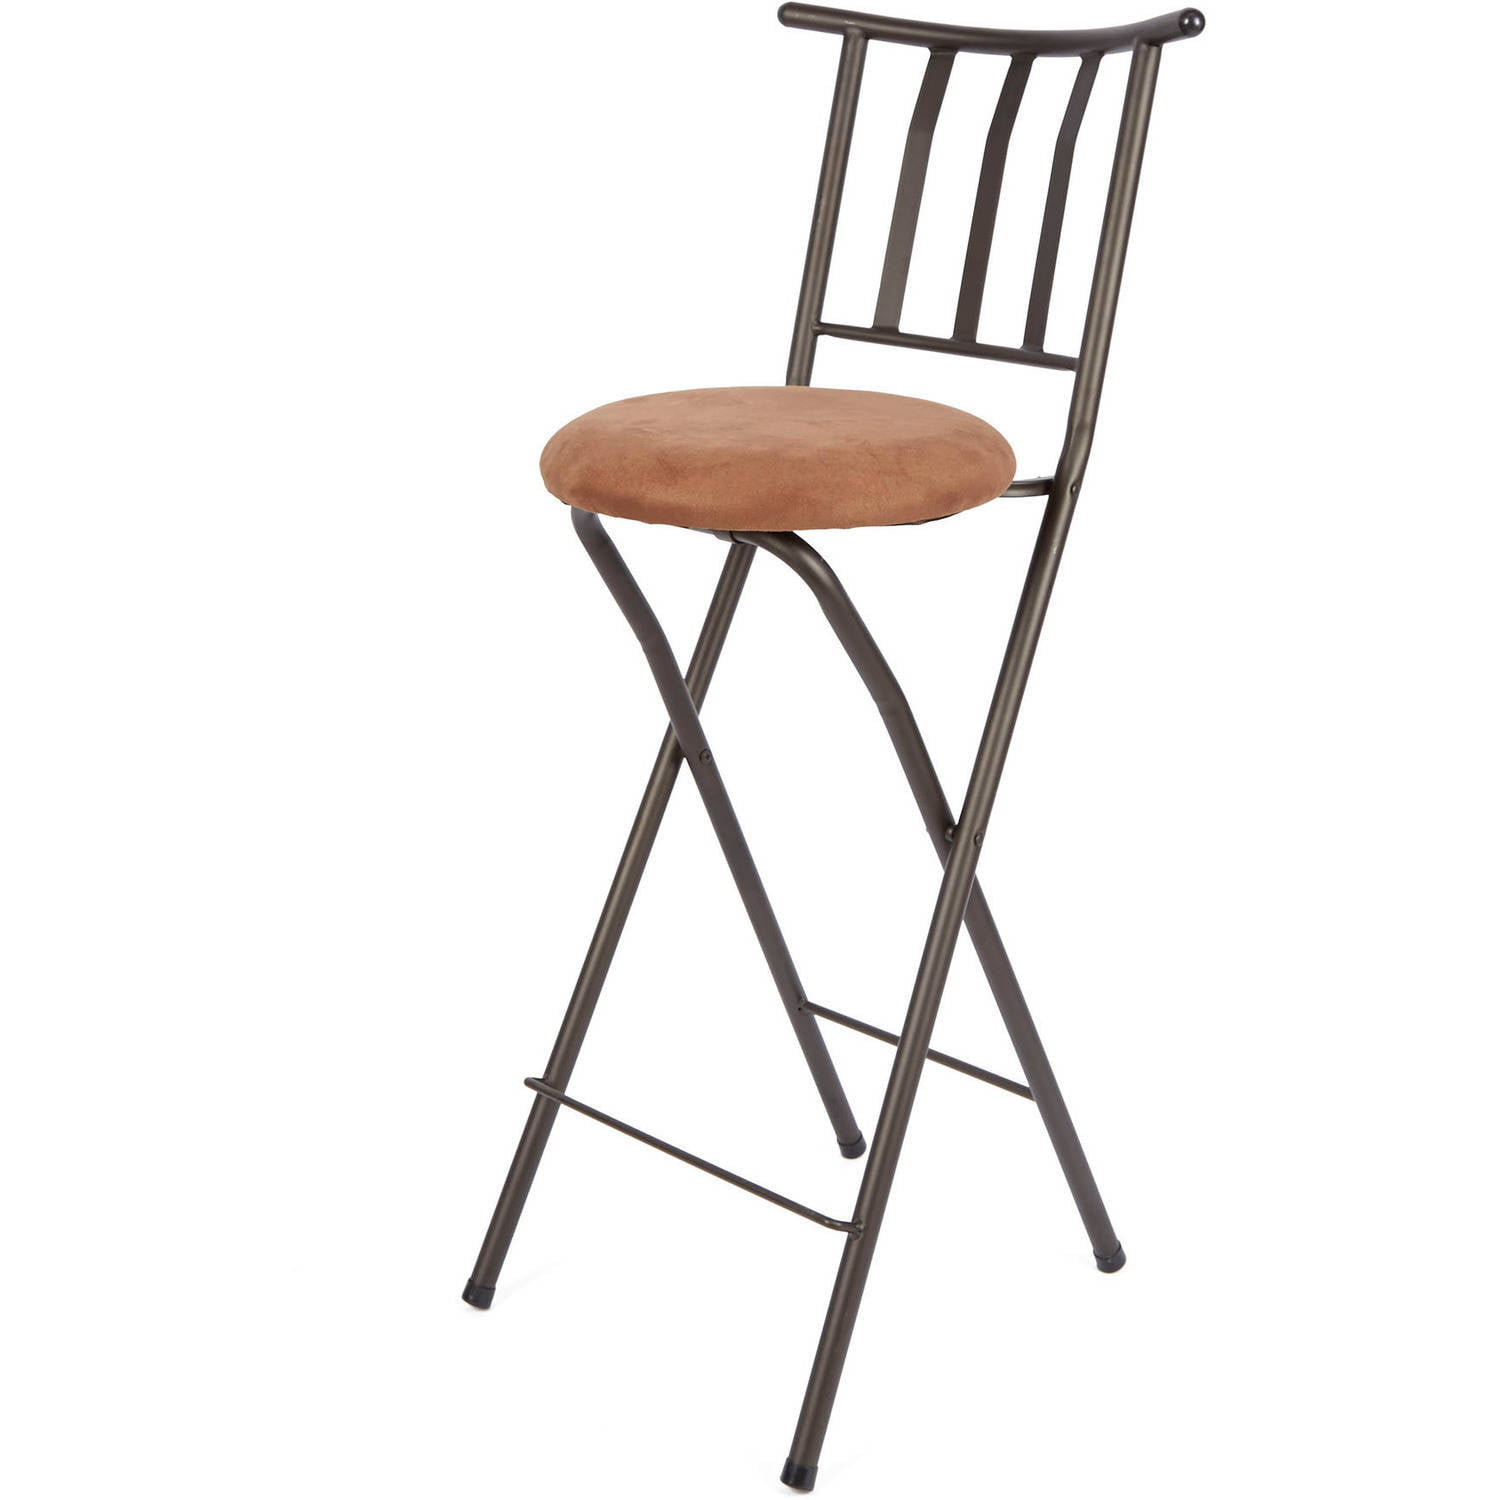 New Adjustable Folding Bar Stool Bronze Chair Furniture X Slat Back 30""